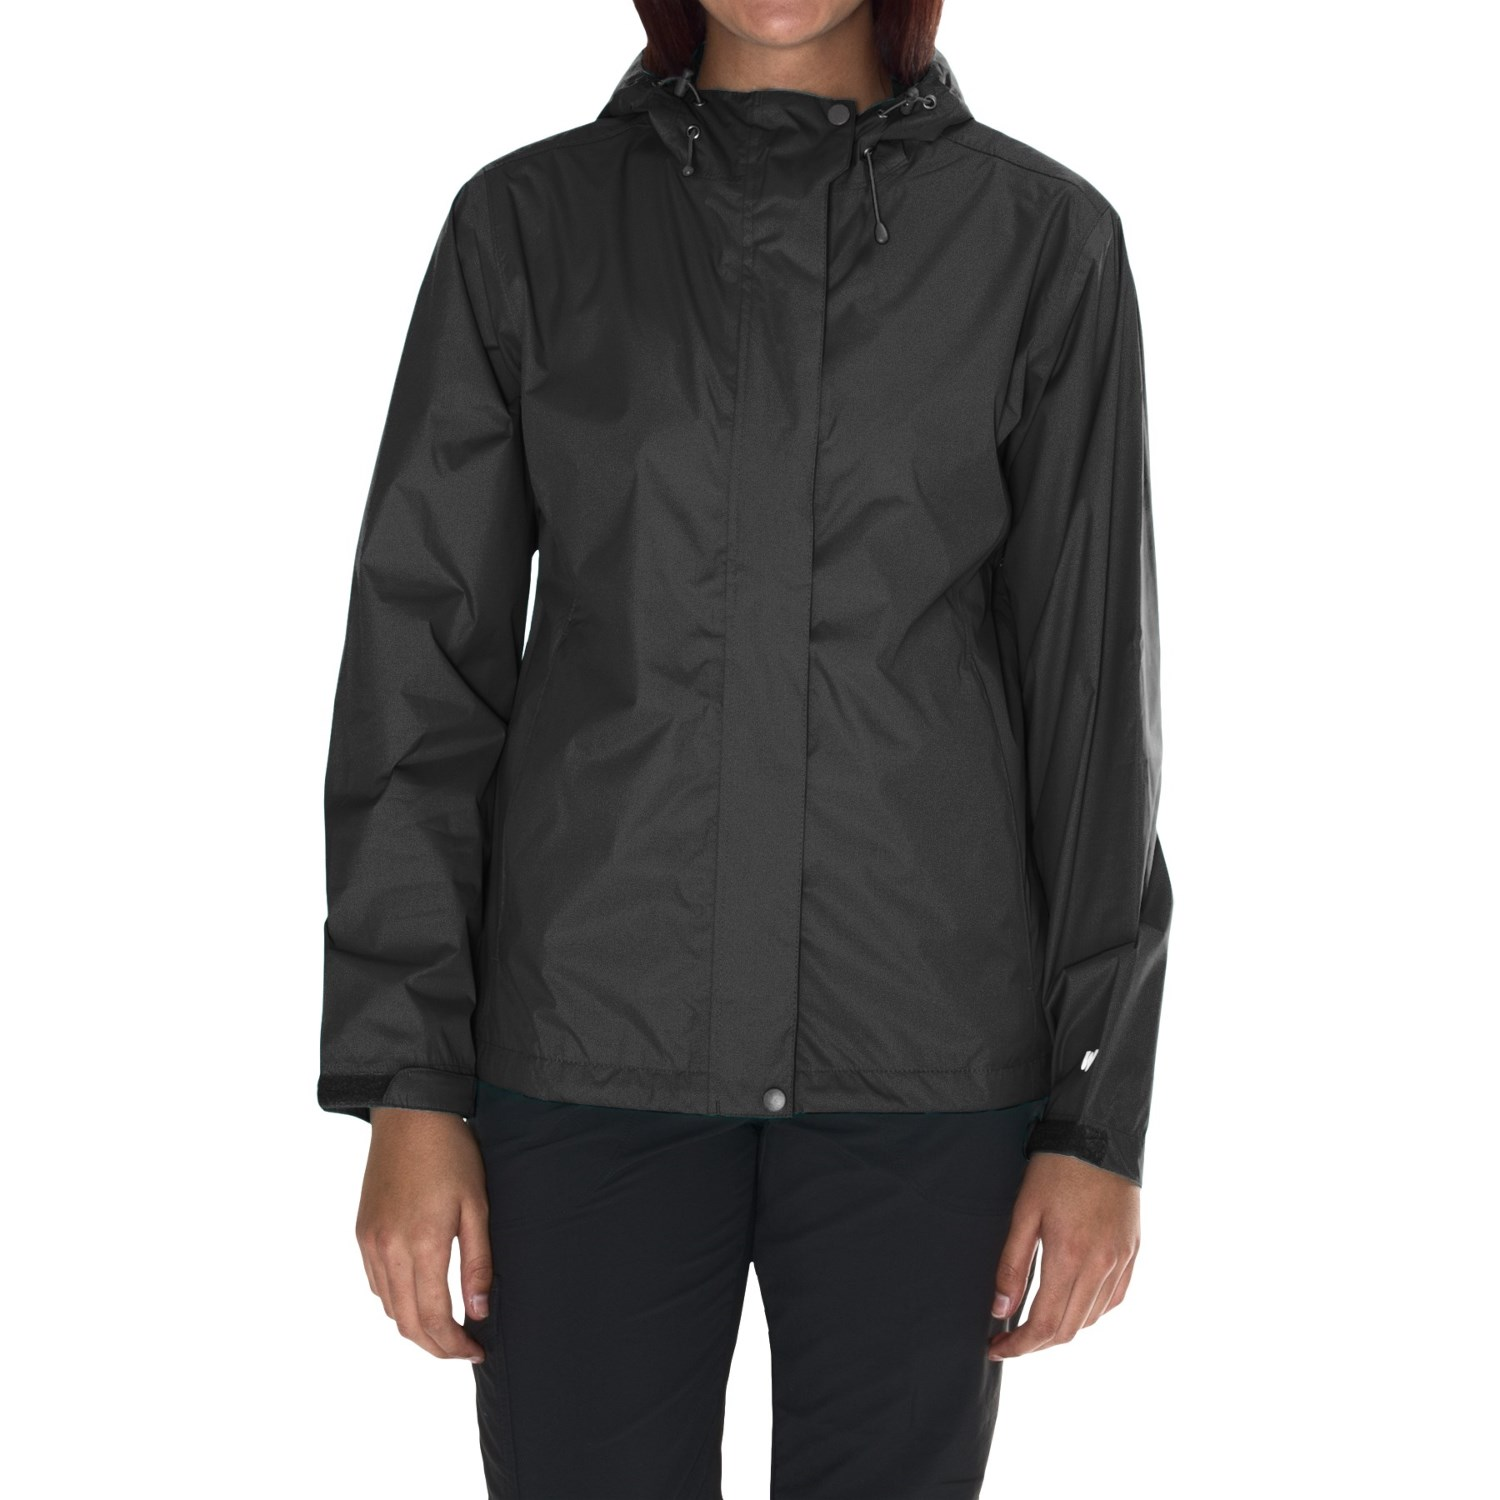 White Sierra Cloudburst Trabagon Rain Jacket (For Women) - Save 41%